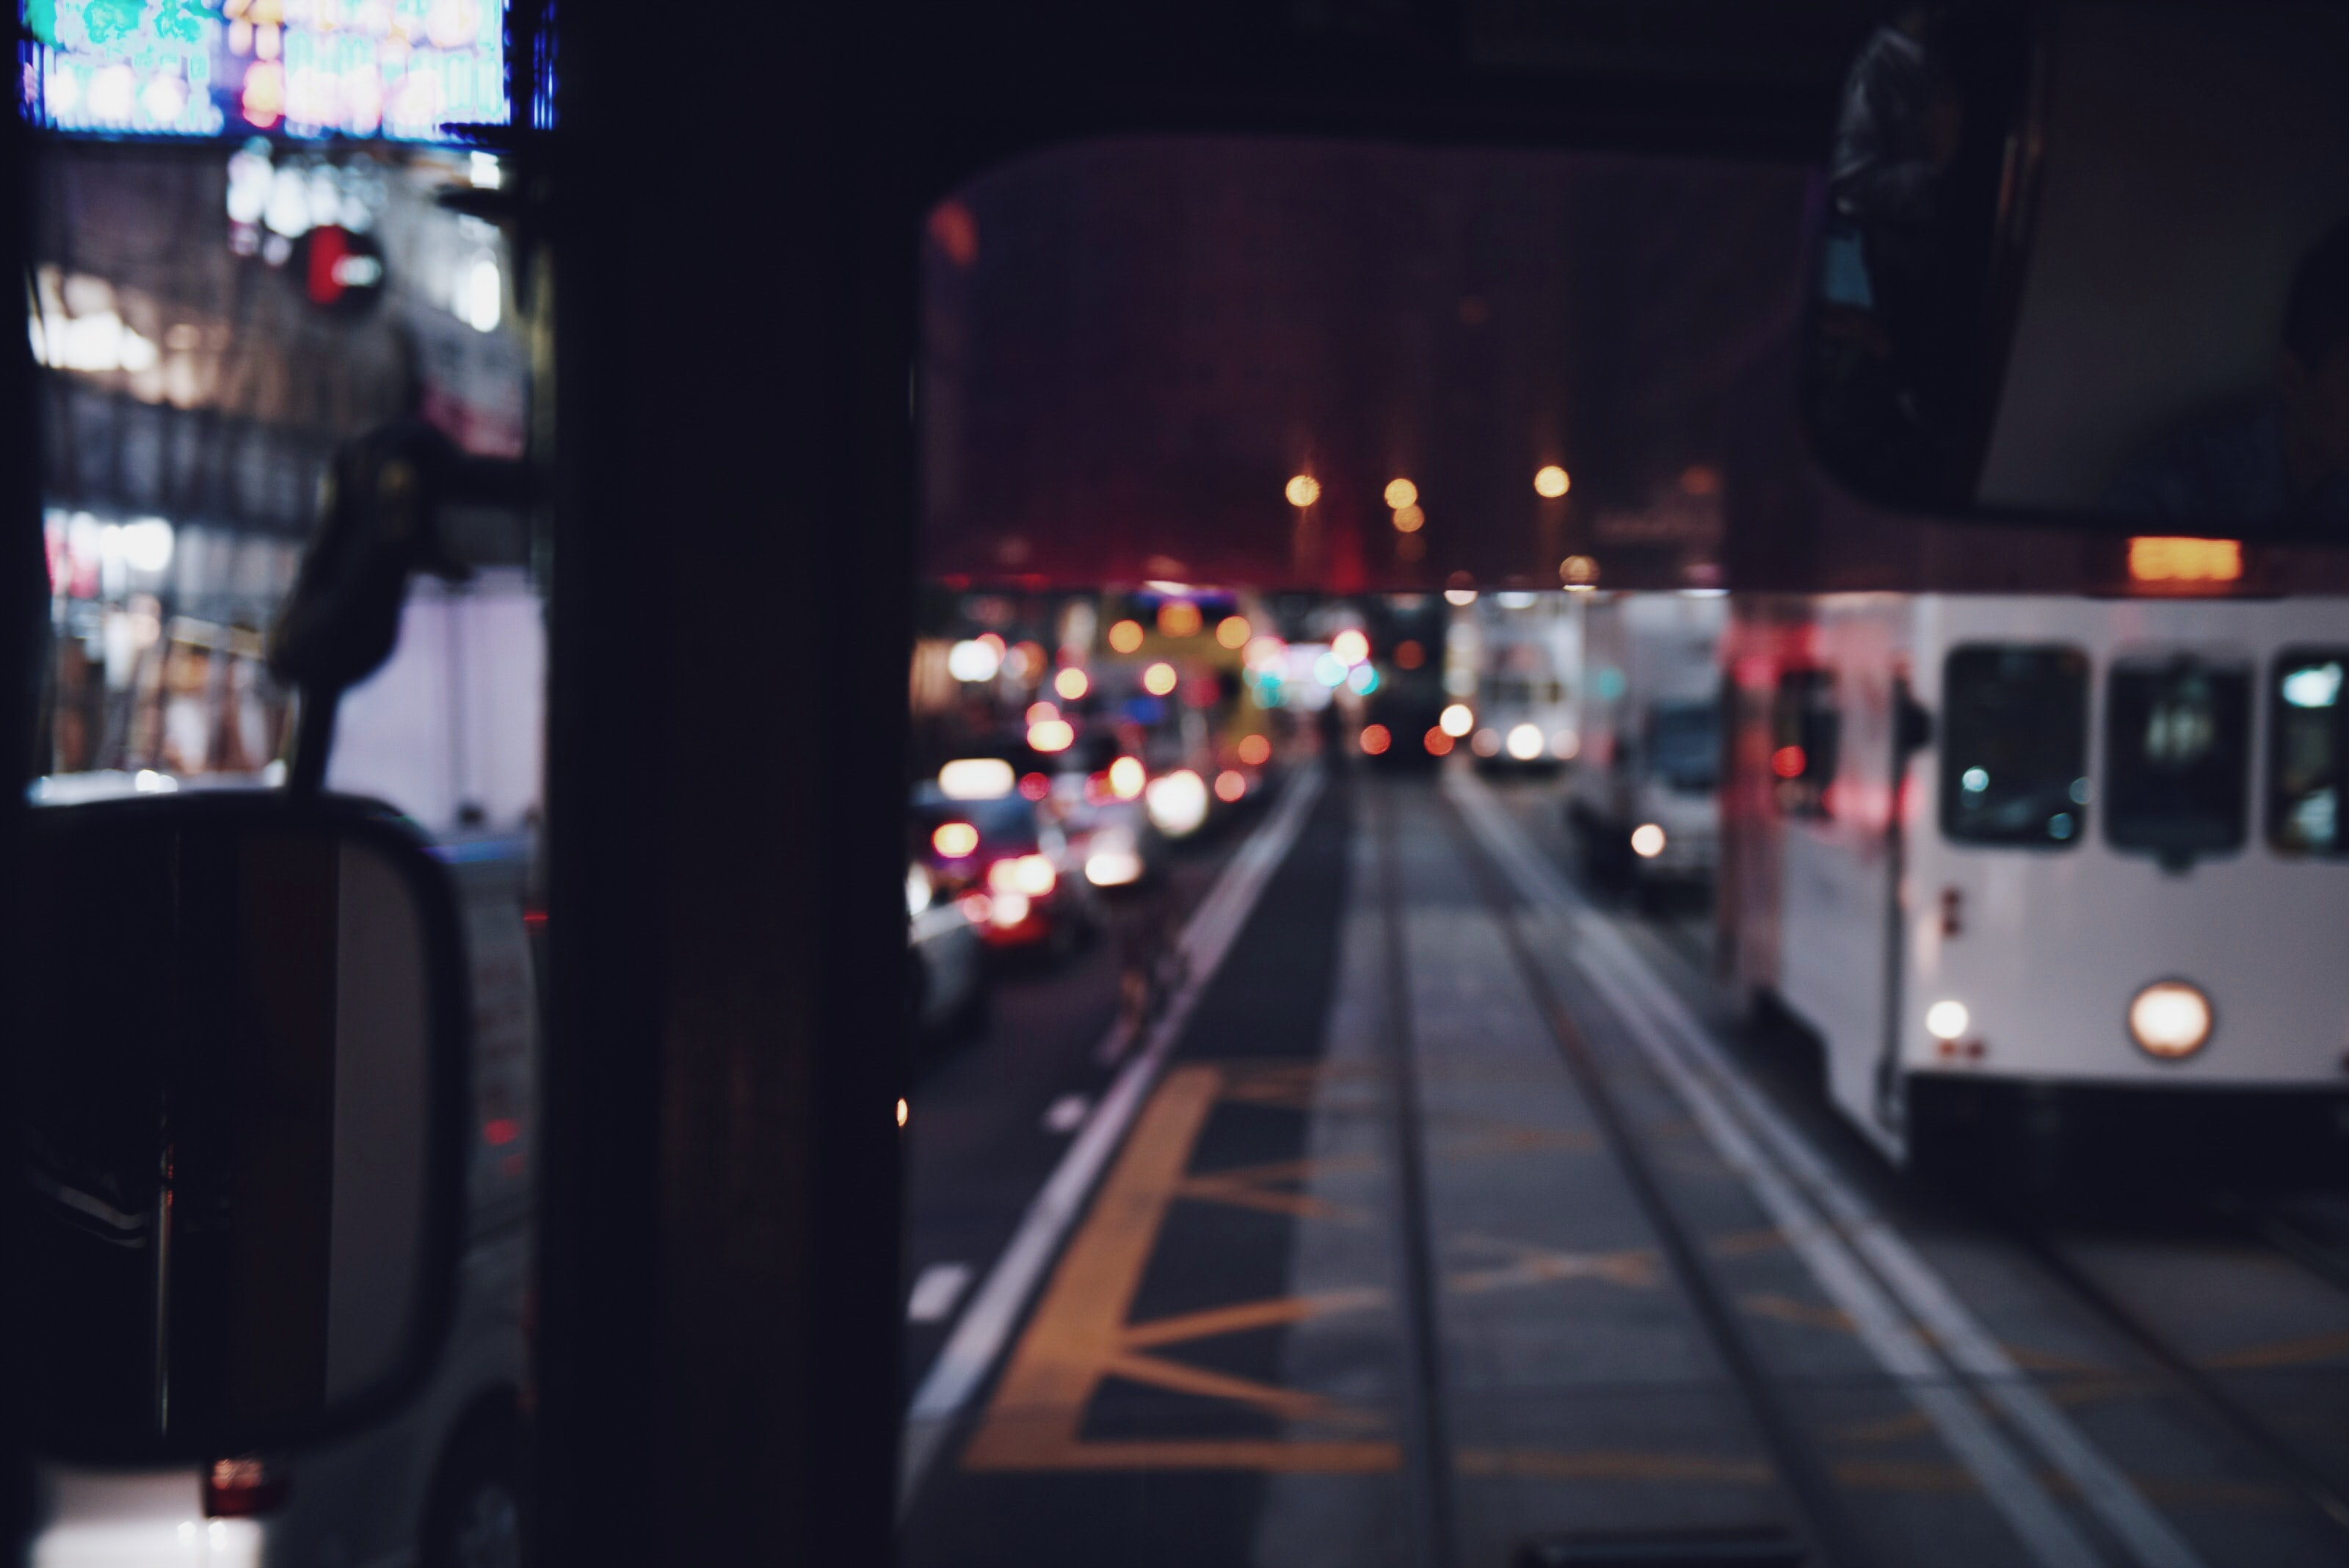 Buses and trains drive past the station on a busy night in the city